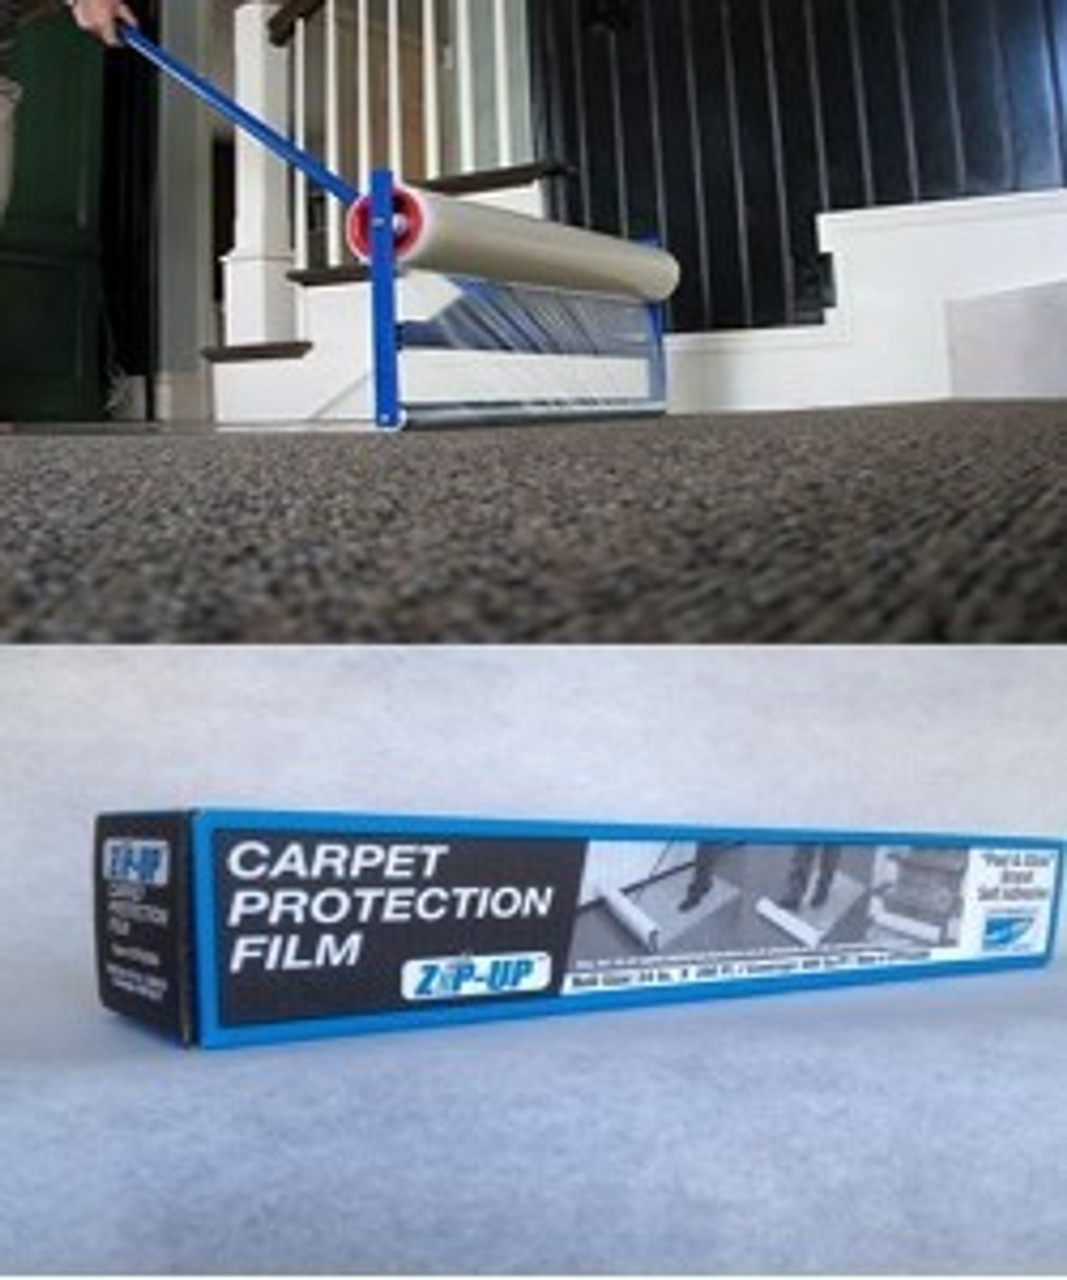 Carpet Film & Applicator Packages